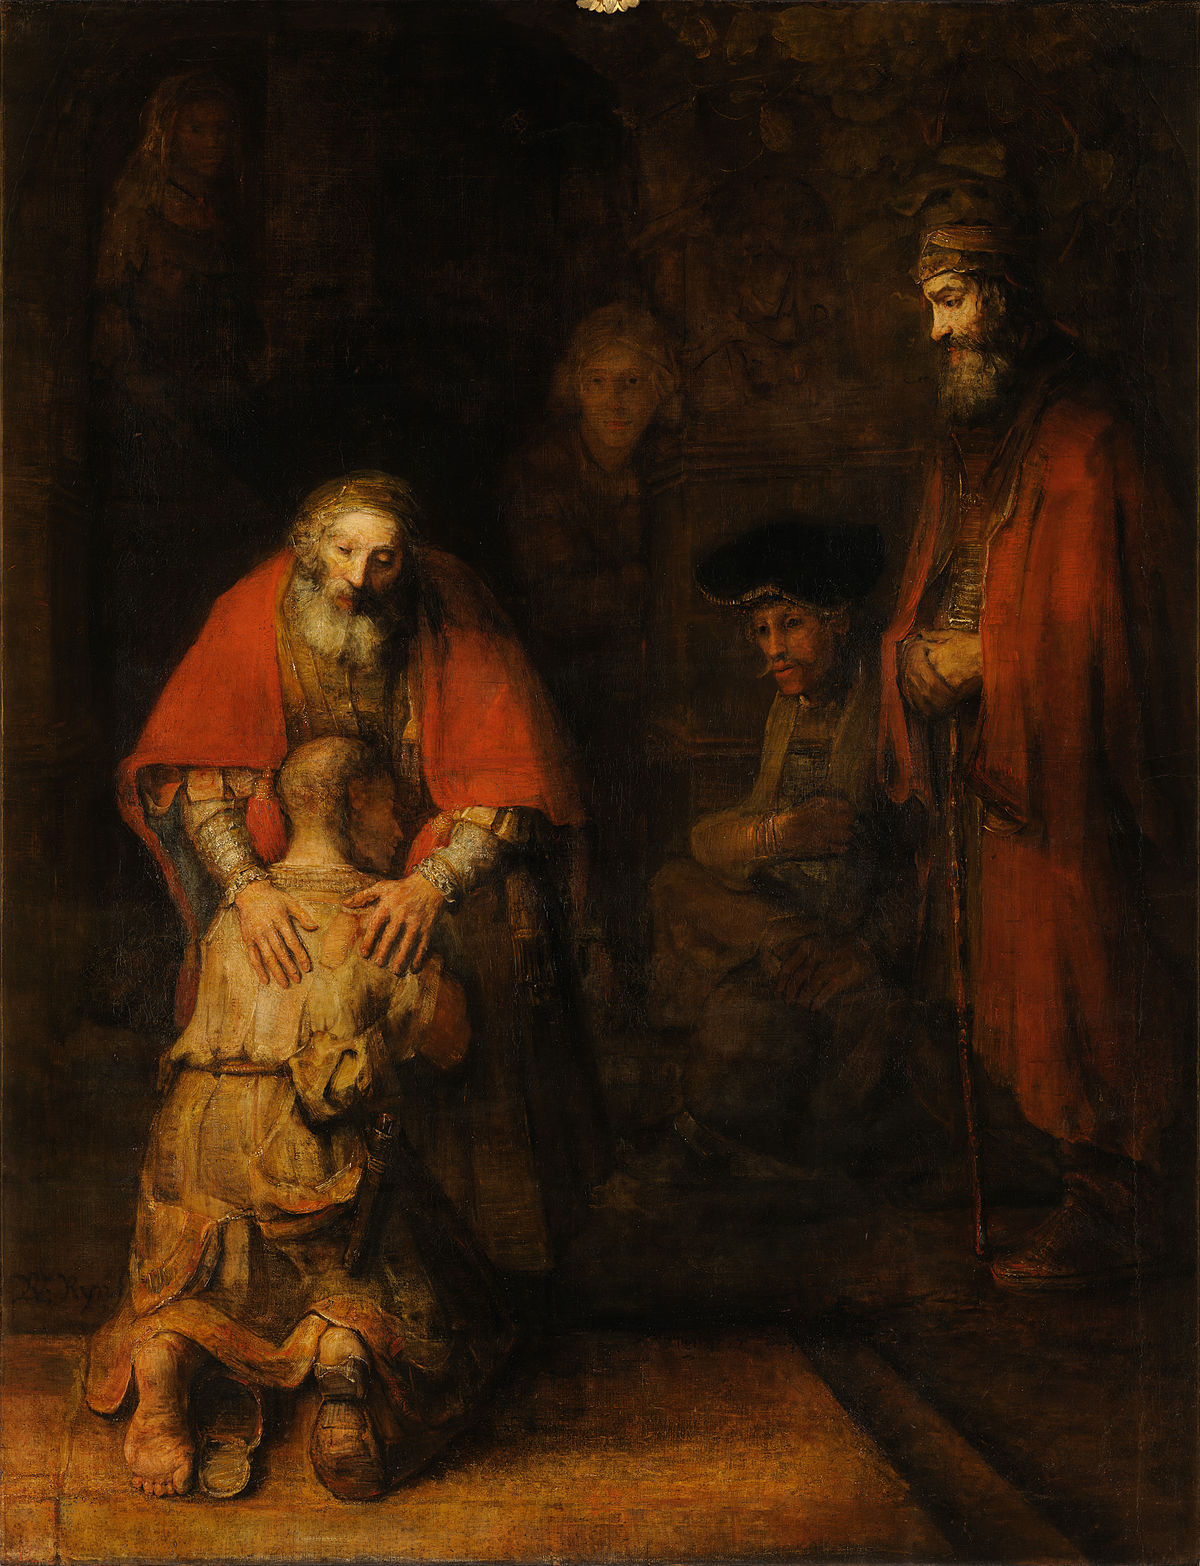 https://upload.wikimedia.org/wikipedia/commons/thumb/9/93/Rembrandt_Harmensz_van_Rijn_-_Return_of_the_Prodigal_Son_-_Google_Art_Project.jpg/1200px-Rembrandt_Harmensz_van_Rijn_-_Return_of_the_Prodigal_Son_-_Google_Art_Project.jpg